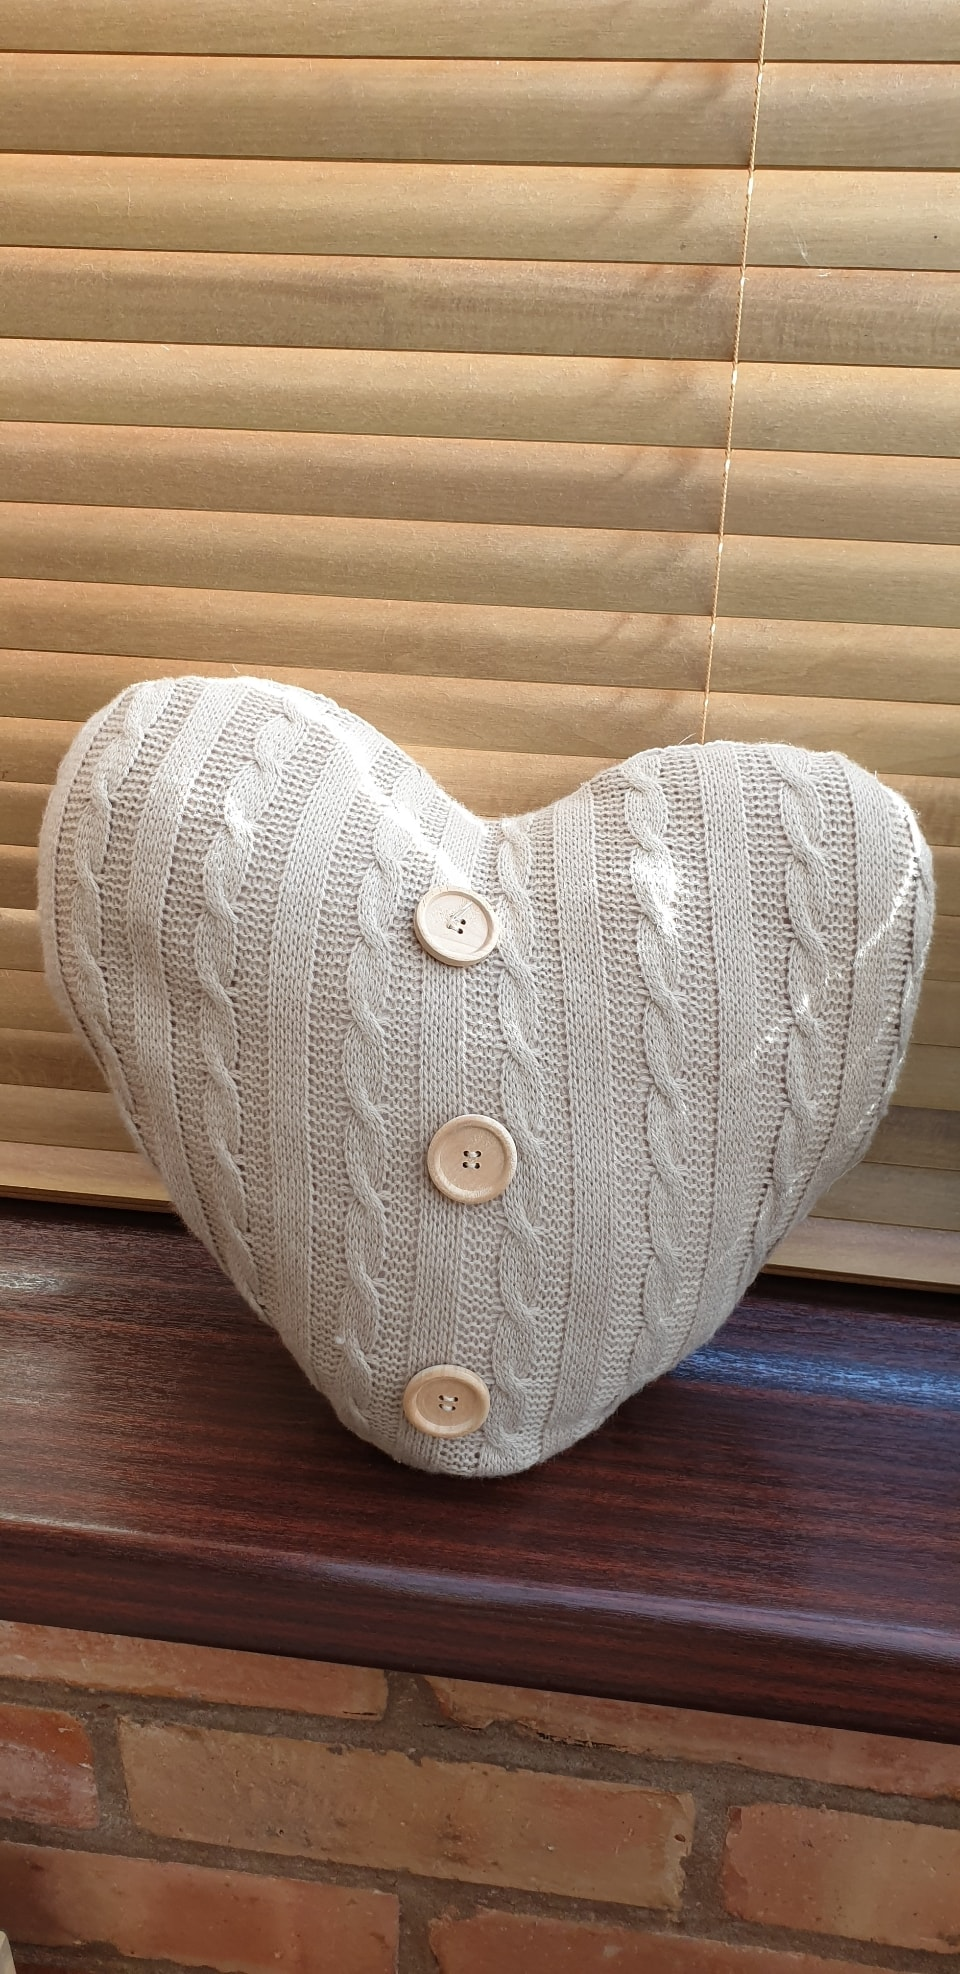 Knitted heart shaped cushion 🎂